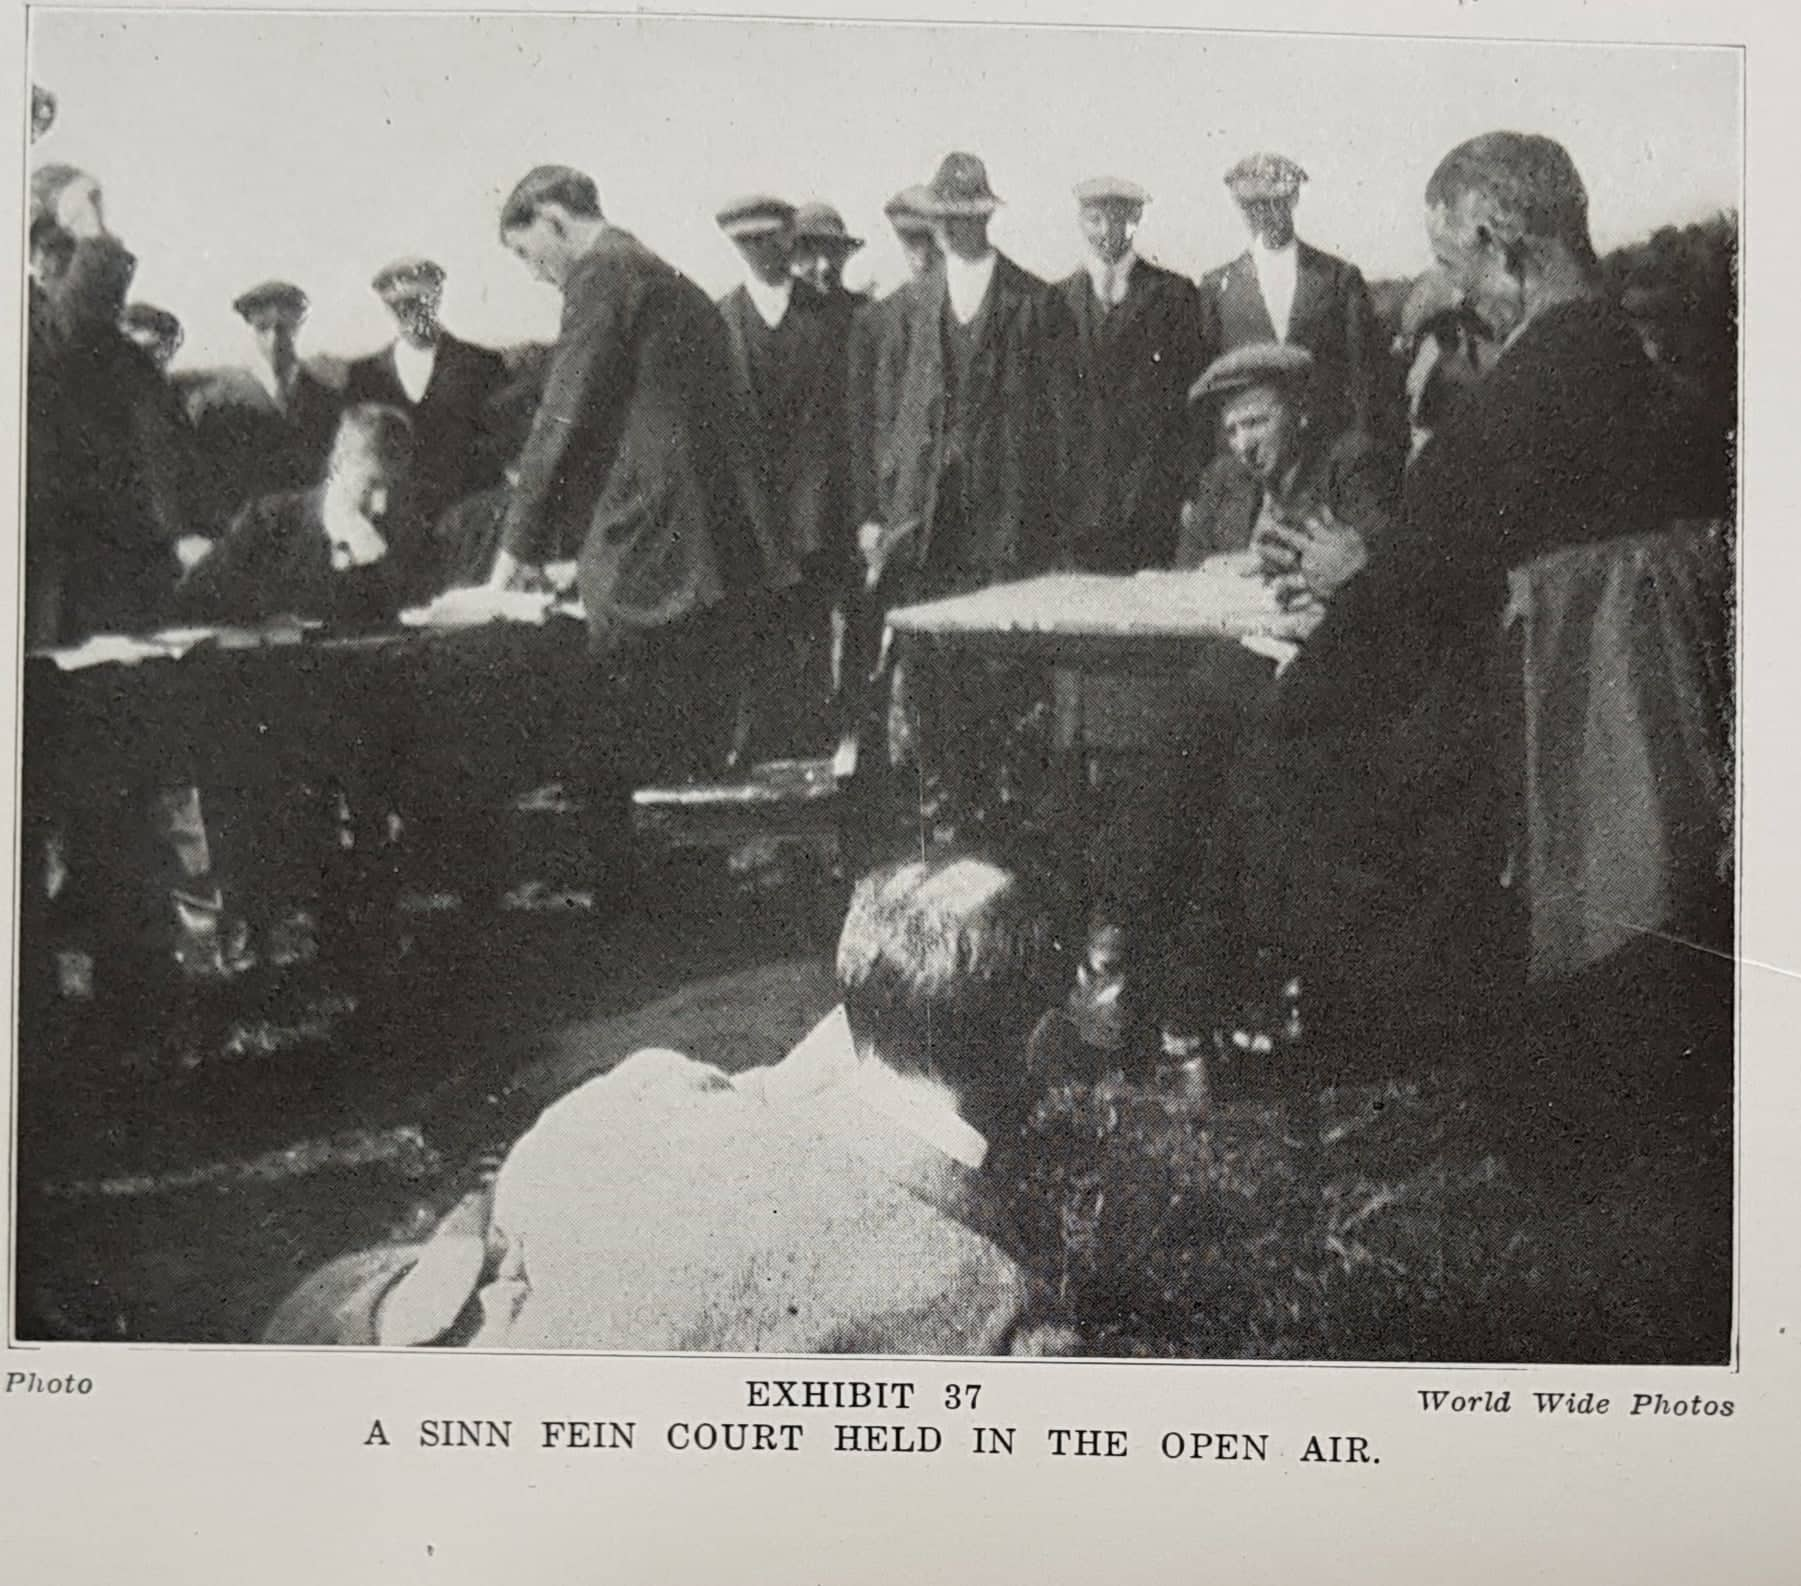 A Sinn Fein court held in the open air